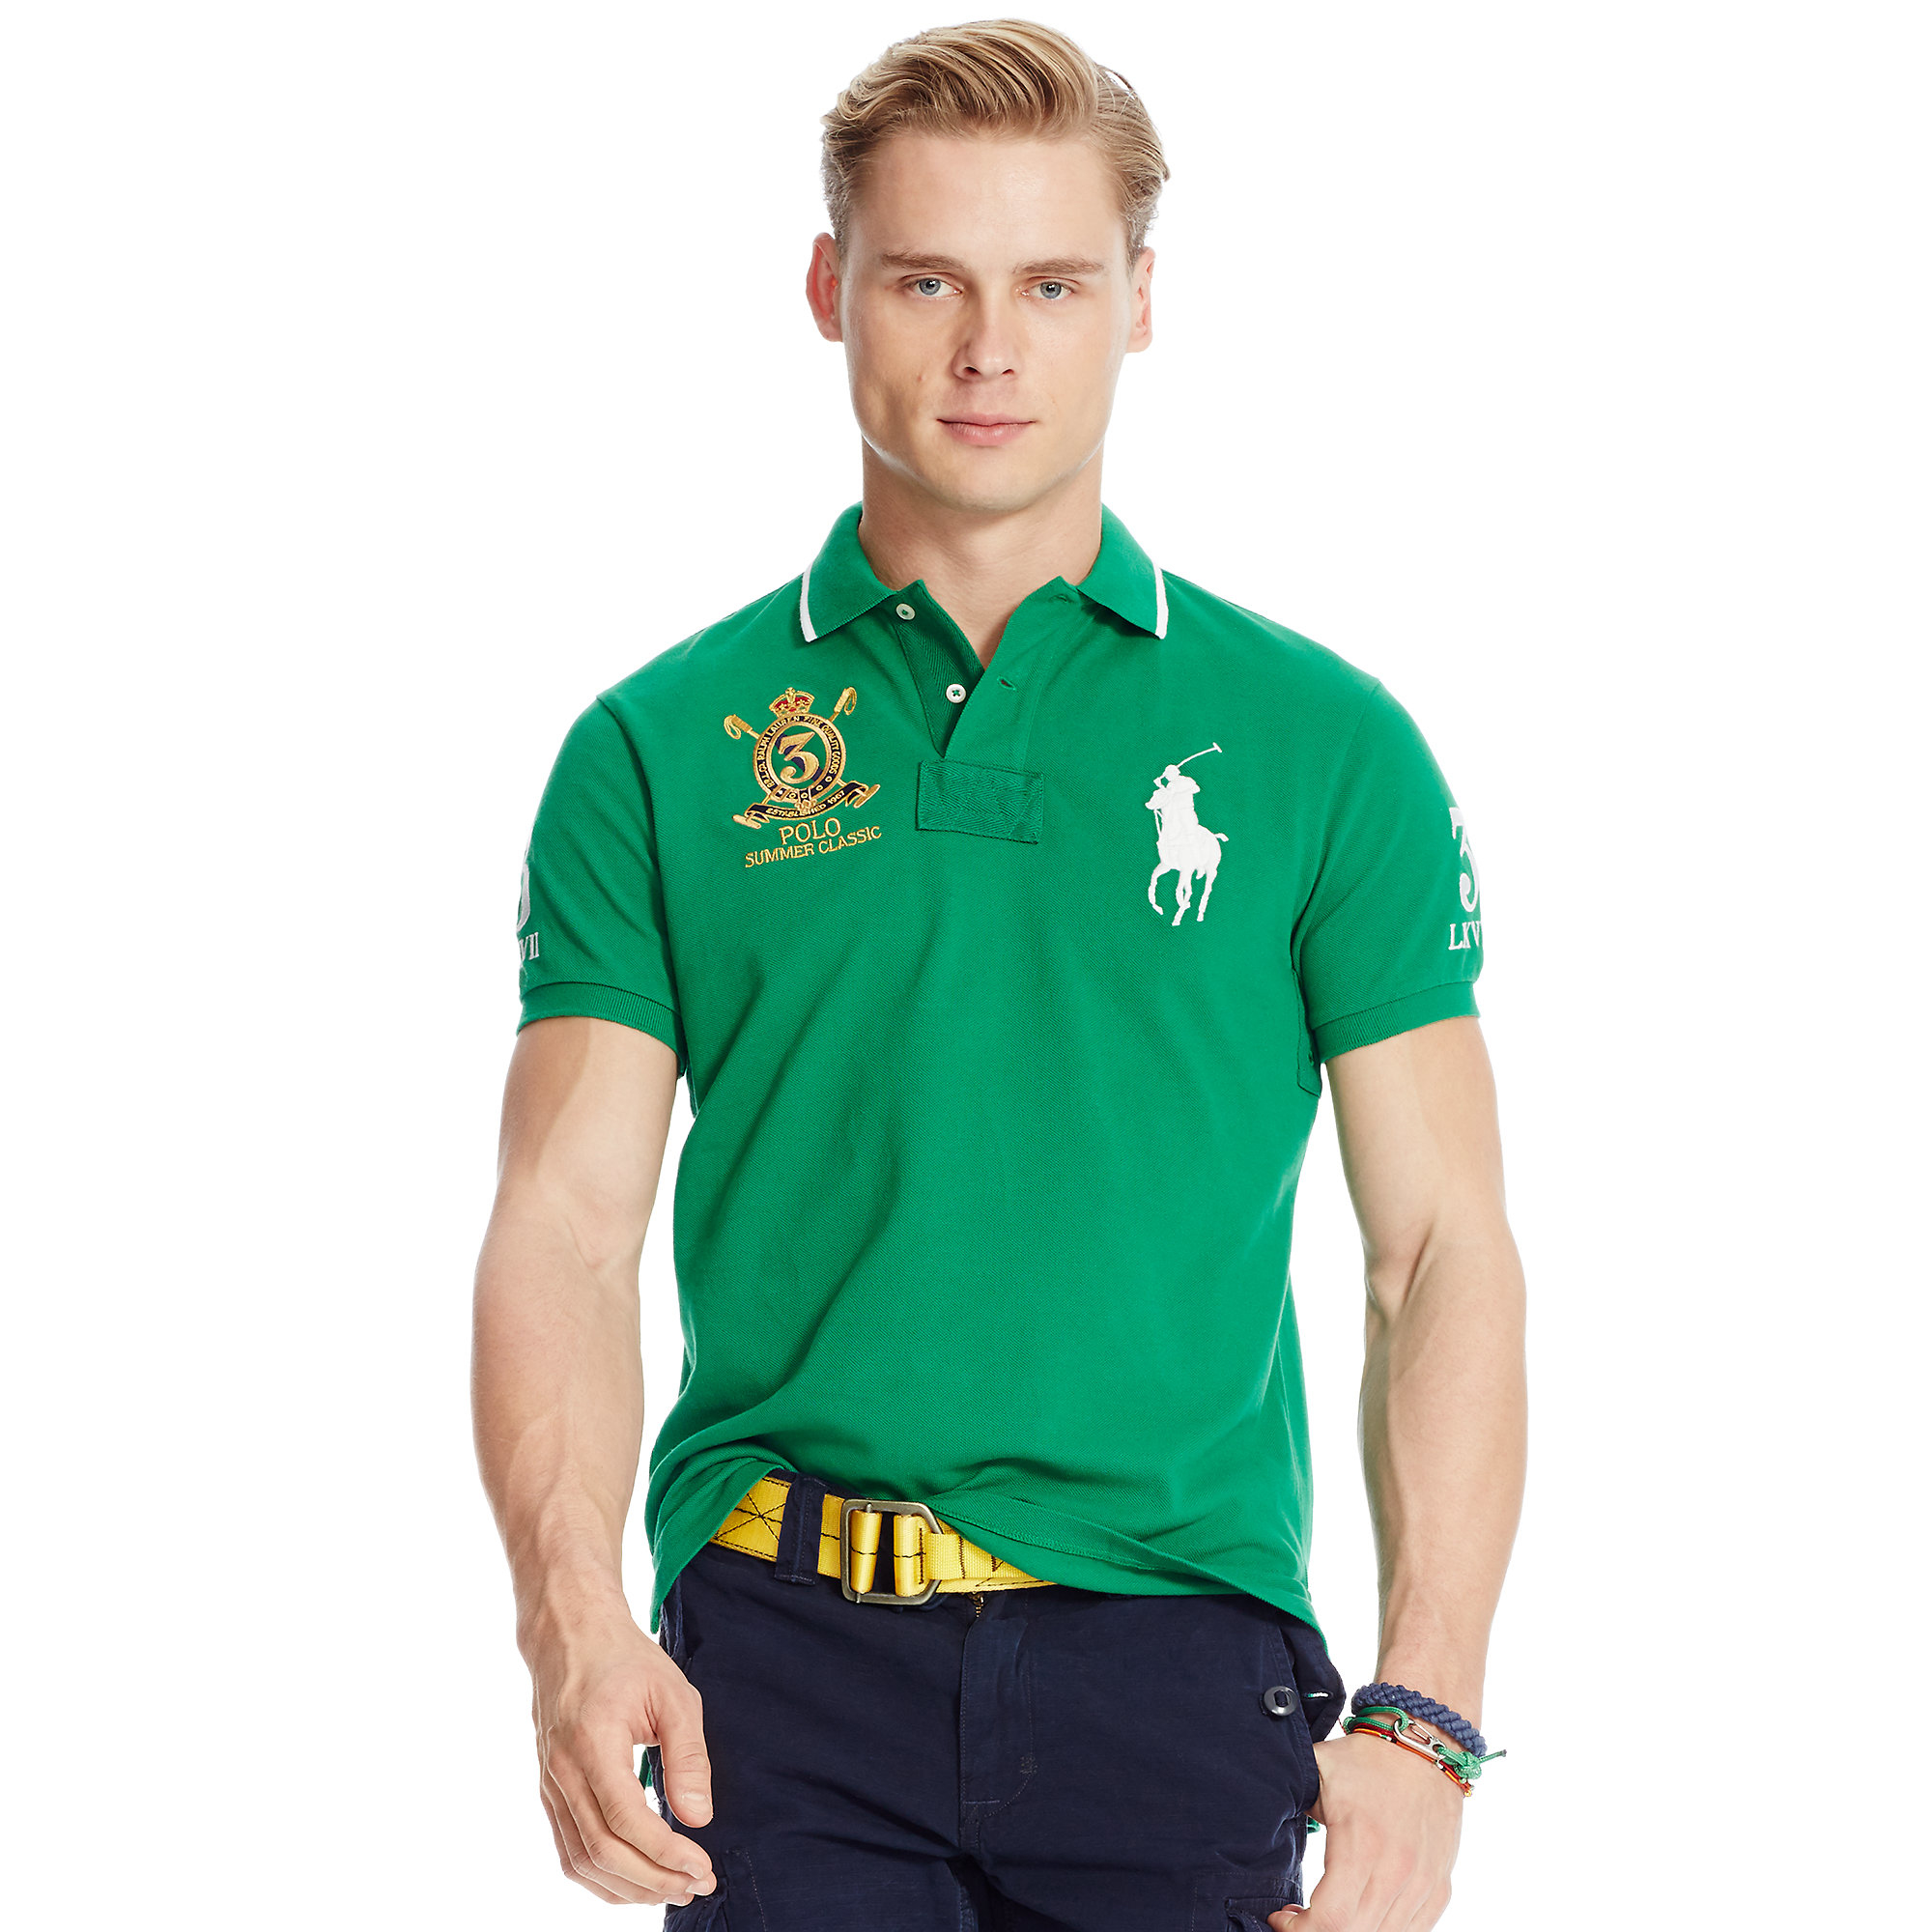 Lyst - Polo Ralph Lauren Classic-fit Big Pony Polo in Green for Men d8647bad72a